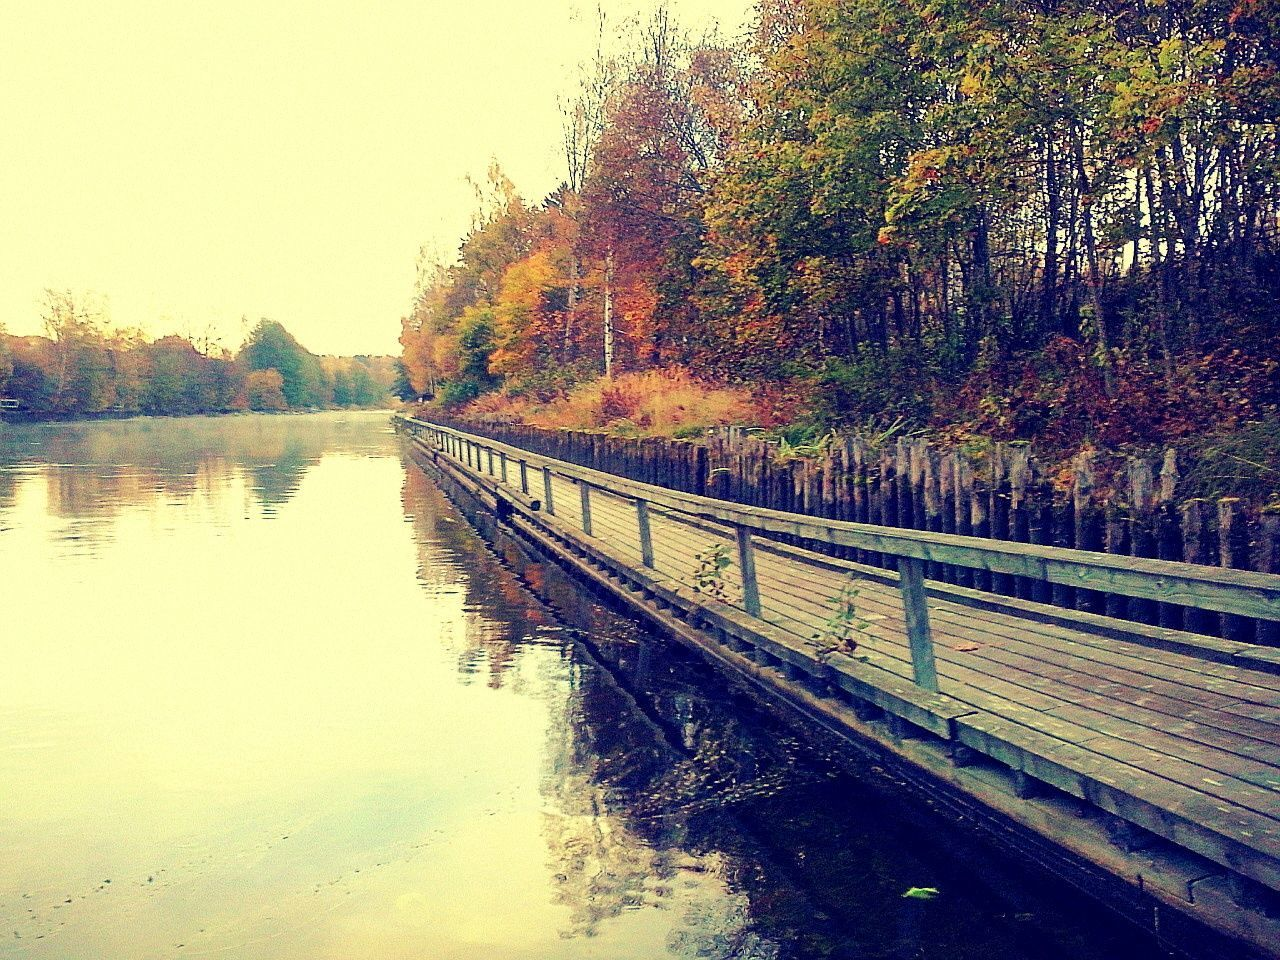 tree, autumn, nature, water, beauty in nature, tranquil scene, river, no people, tranquility, outdoors, change, scenics, day, built structure, sky